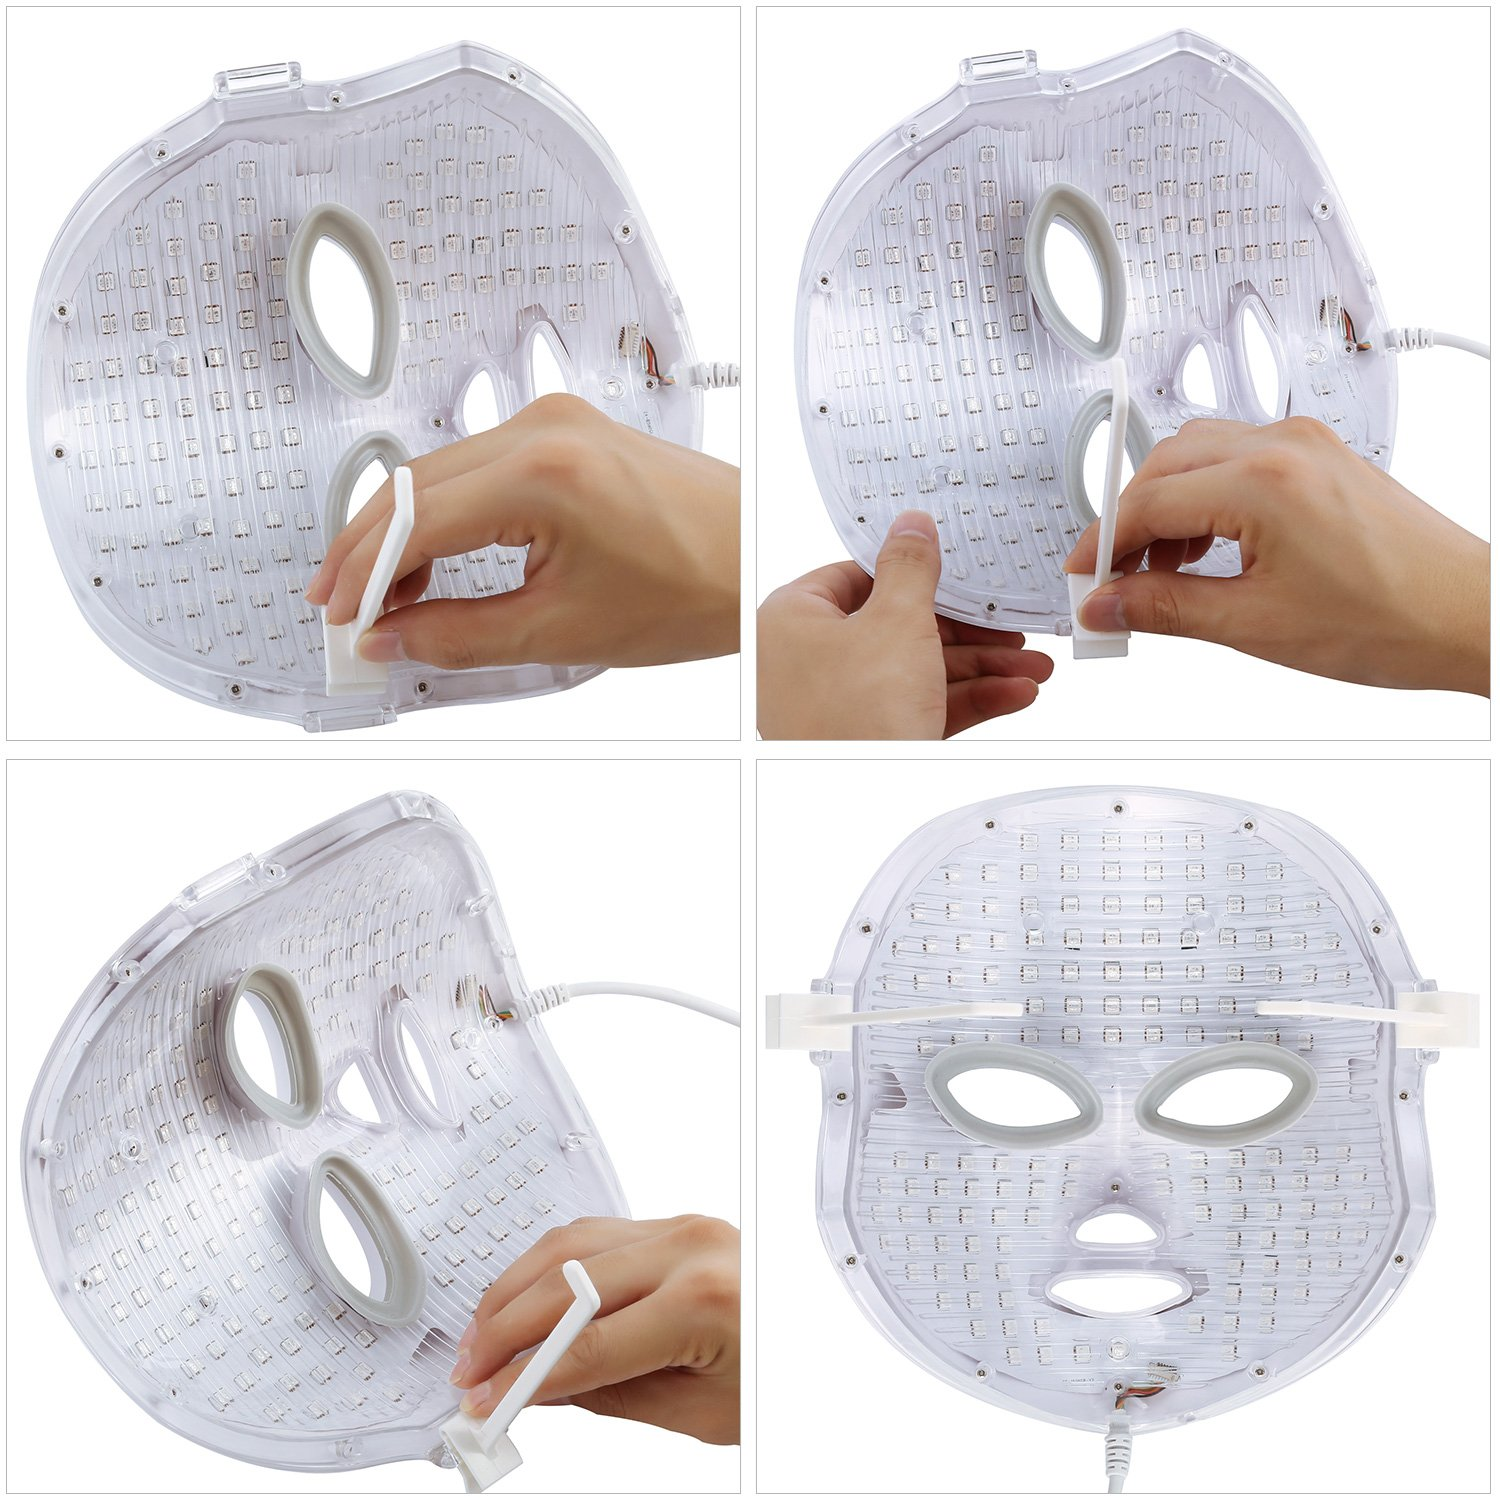 NEWKEY LED Photon Light Therapy Facial Mask Professional Anti Aging Skin Care Device for Face Whitening and Smooth - 1 YEAR WARRANTY by NEWKEY (Image #6)